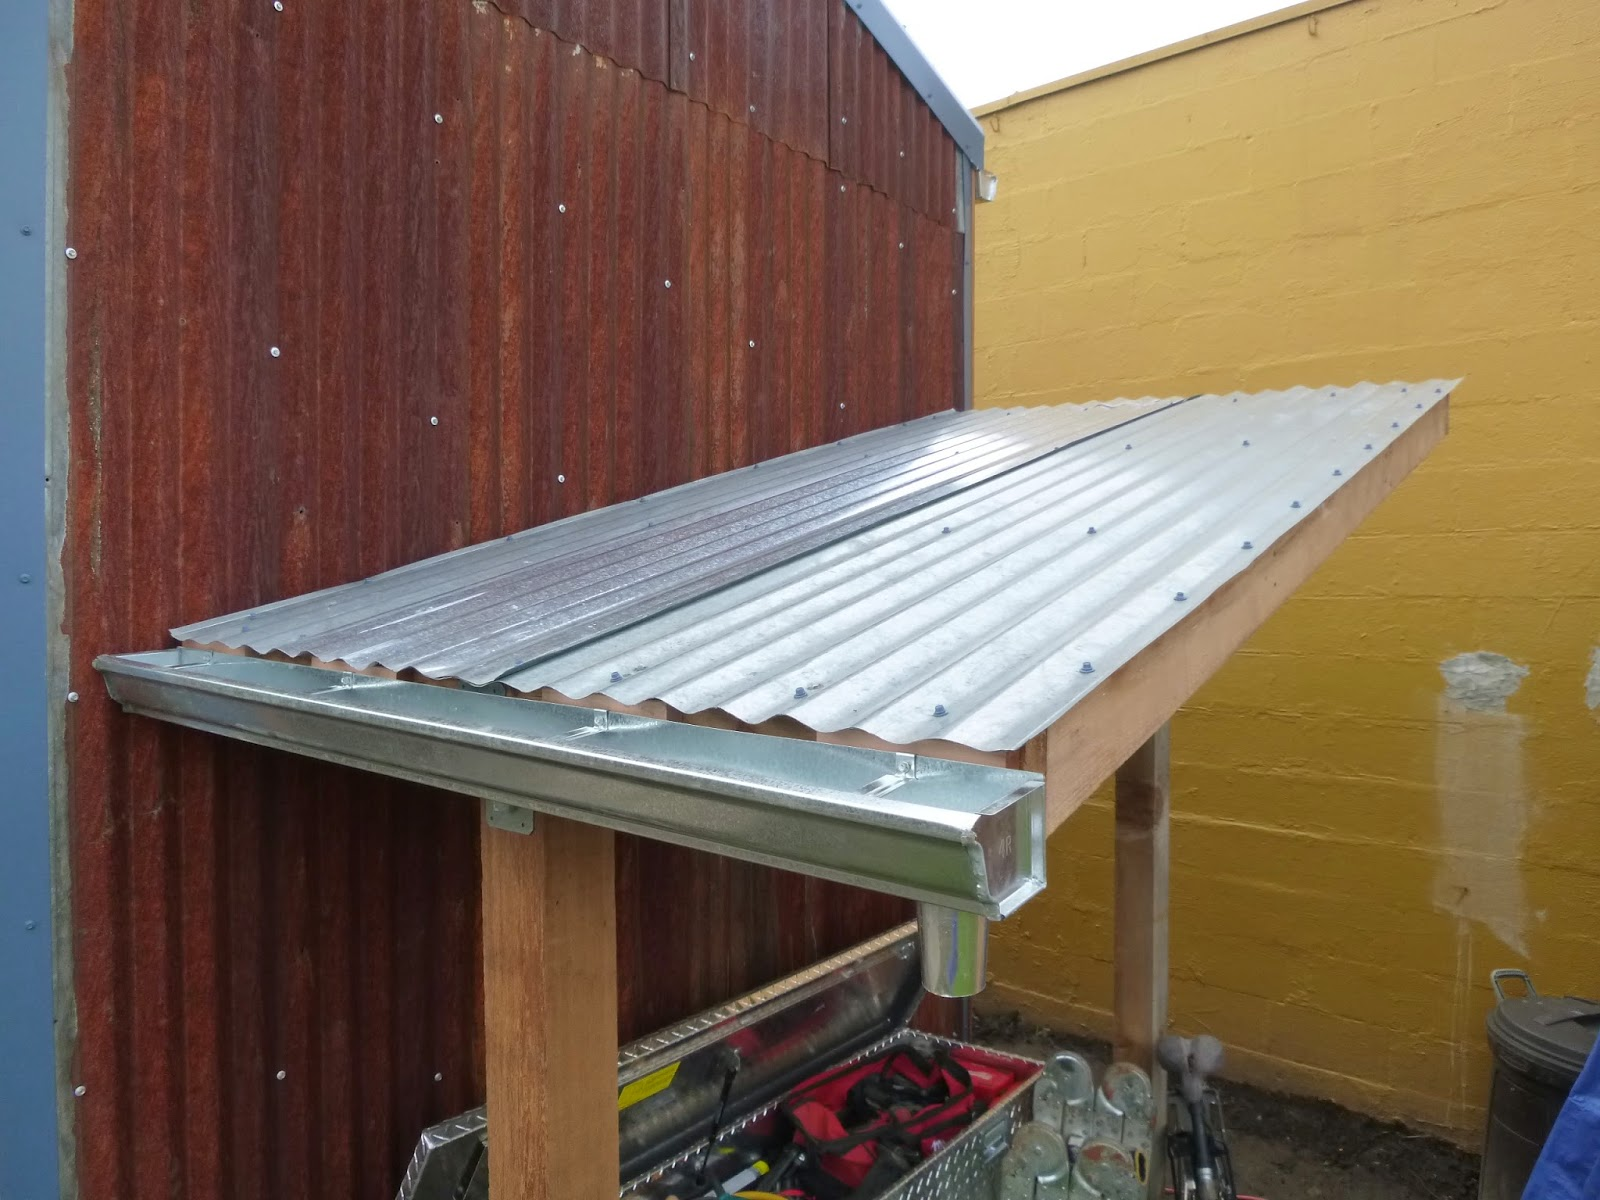 I Had A Leftover Section Of Gutter Which Was The Perfect Length For My Bike Tool Shed So Installed It On Low Side After T Corrugated Metal